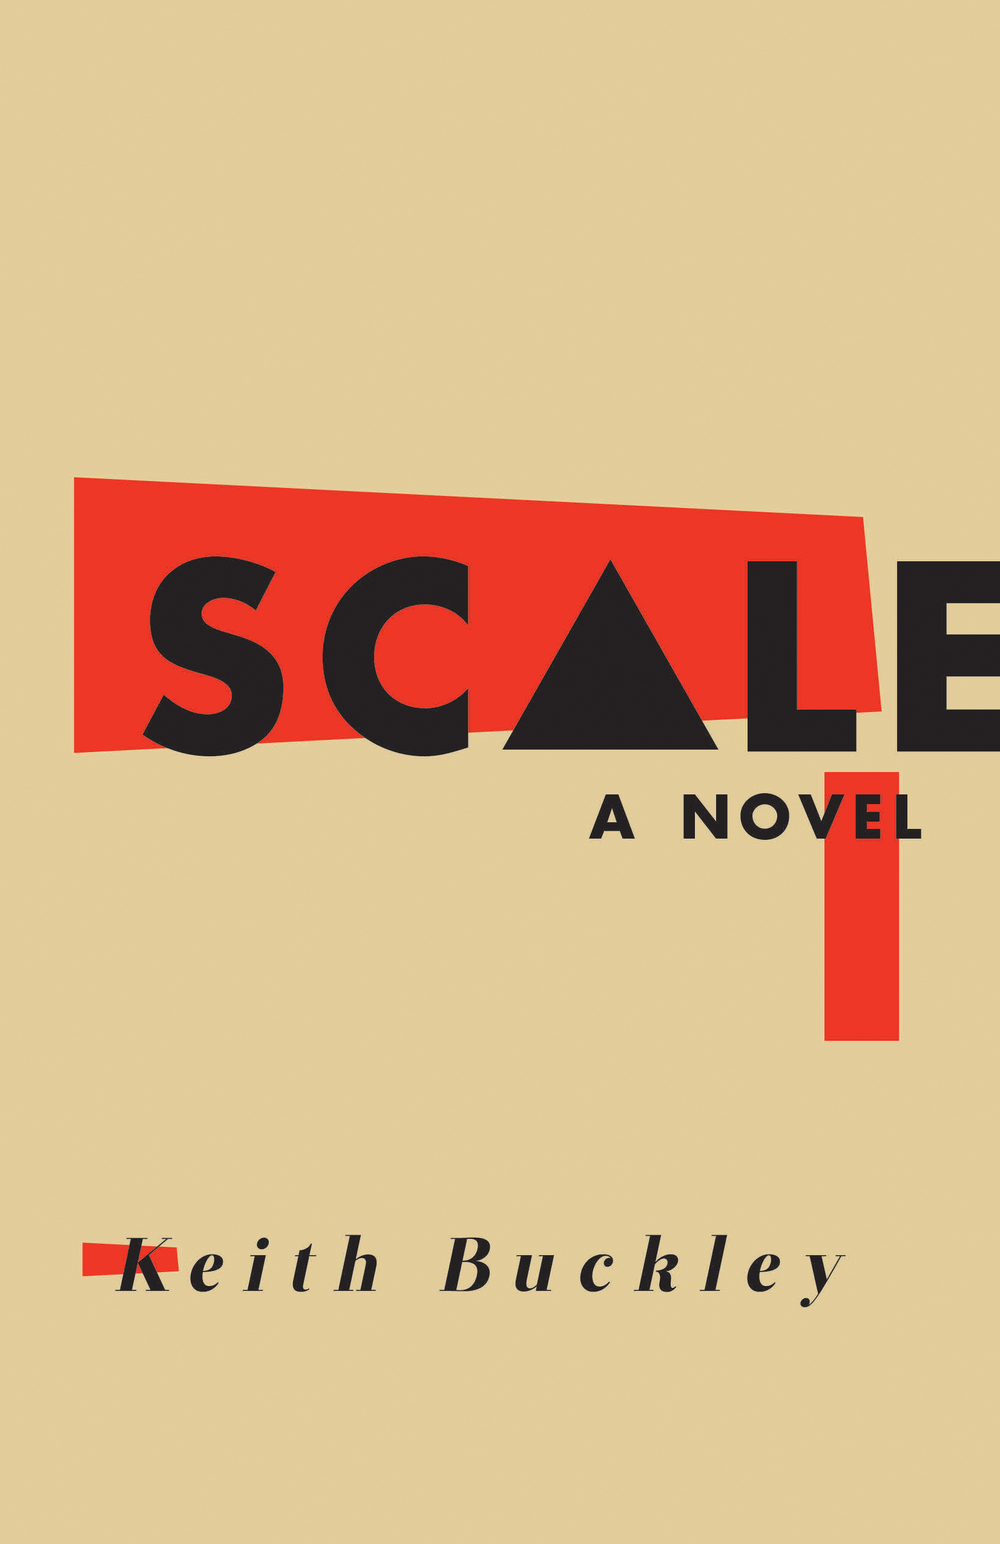 Scale chronicles Ray Goldman's journey downward through the adversarial trials that sometimes prove necessary in facilitating an eventual ascent into truth and happiness. The odd chapters of the novel find Ray, now a 31-year-old guitar player, seeking fulfillment in the wake of a life-altering tragedy while the even chapters see him reflecting on the depravity and selfishness that hastened his descent towards it. Scale is about the relationship between instability and balance, death and resurrection, perception and reality, but ultimately it is about the endless war waged between our disquieted minds and our noble hearts.